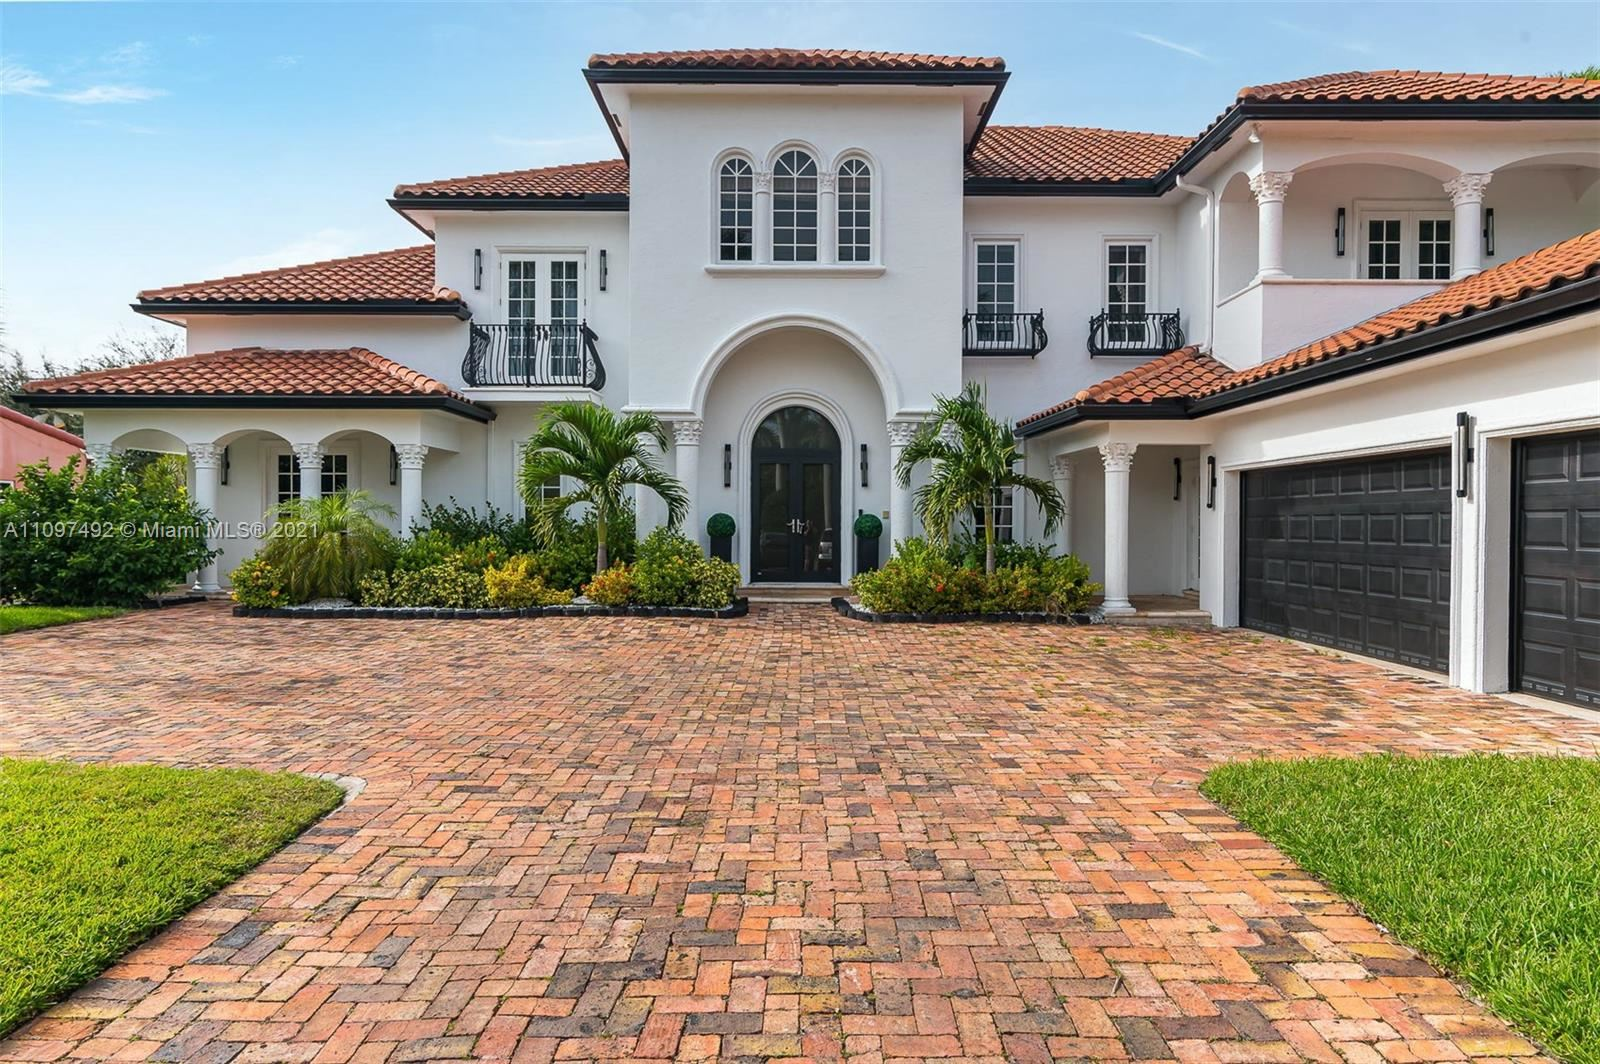 Photo of 1309 Middle River Dr, Fort Lauderdale, FL 33304 (MLS # A11097492)